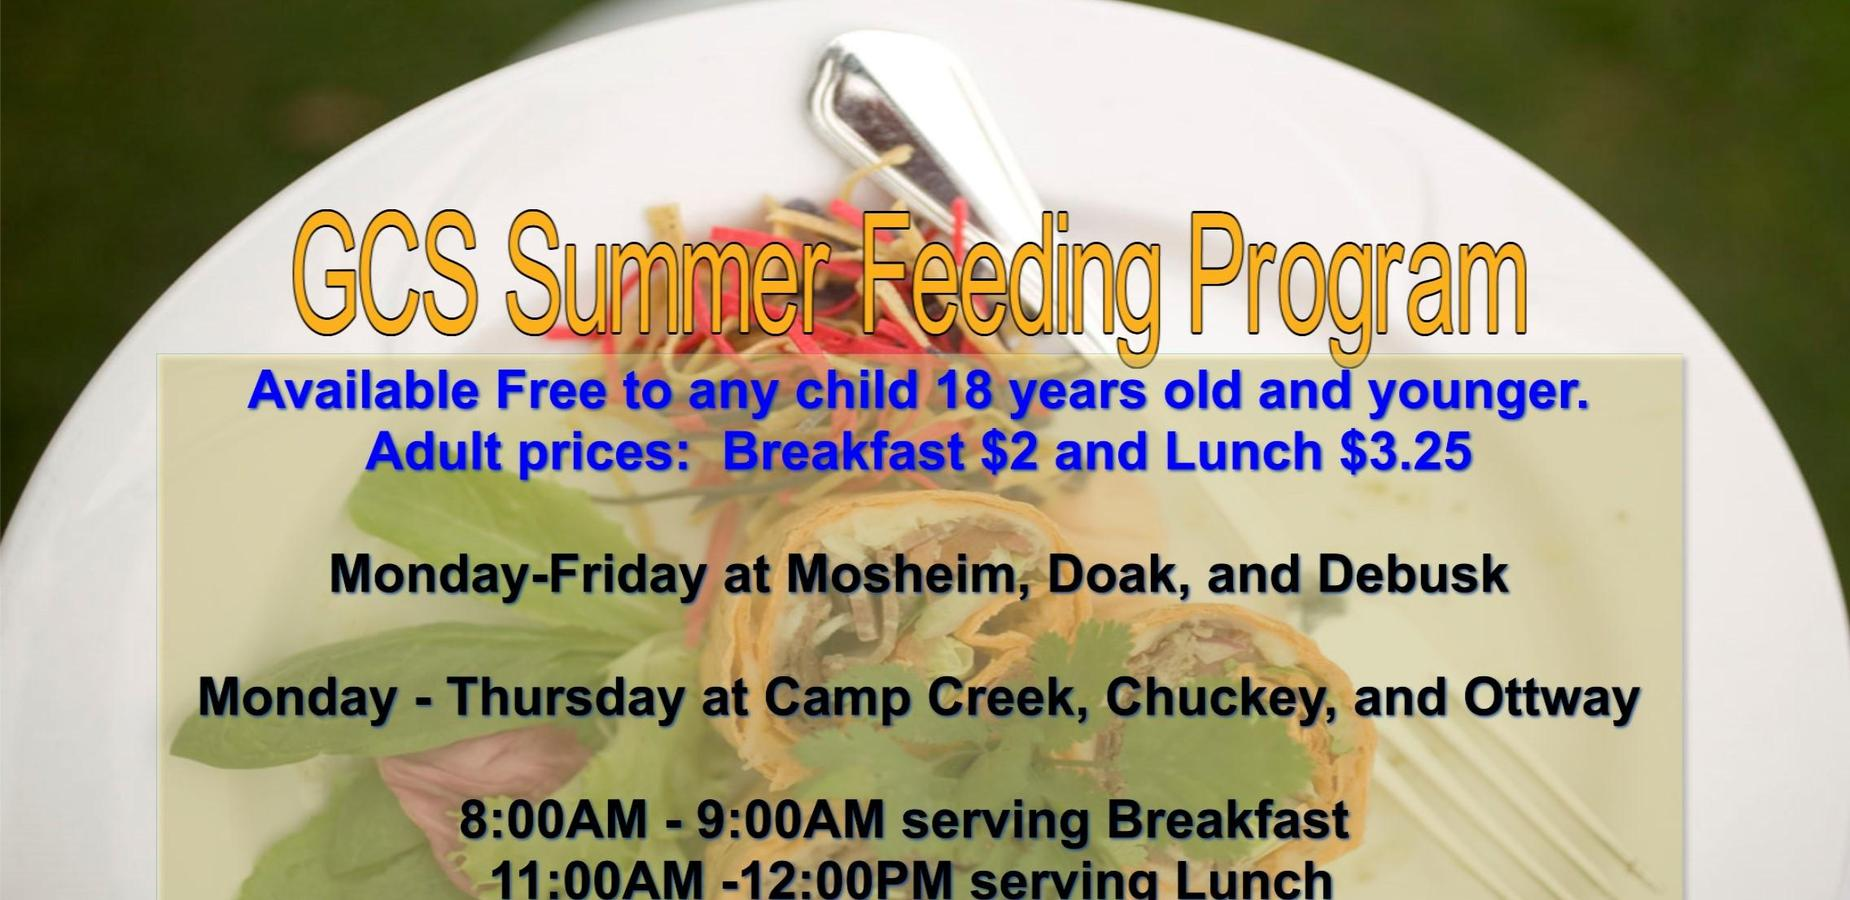 GCS Summer Feeding Program